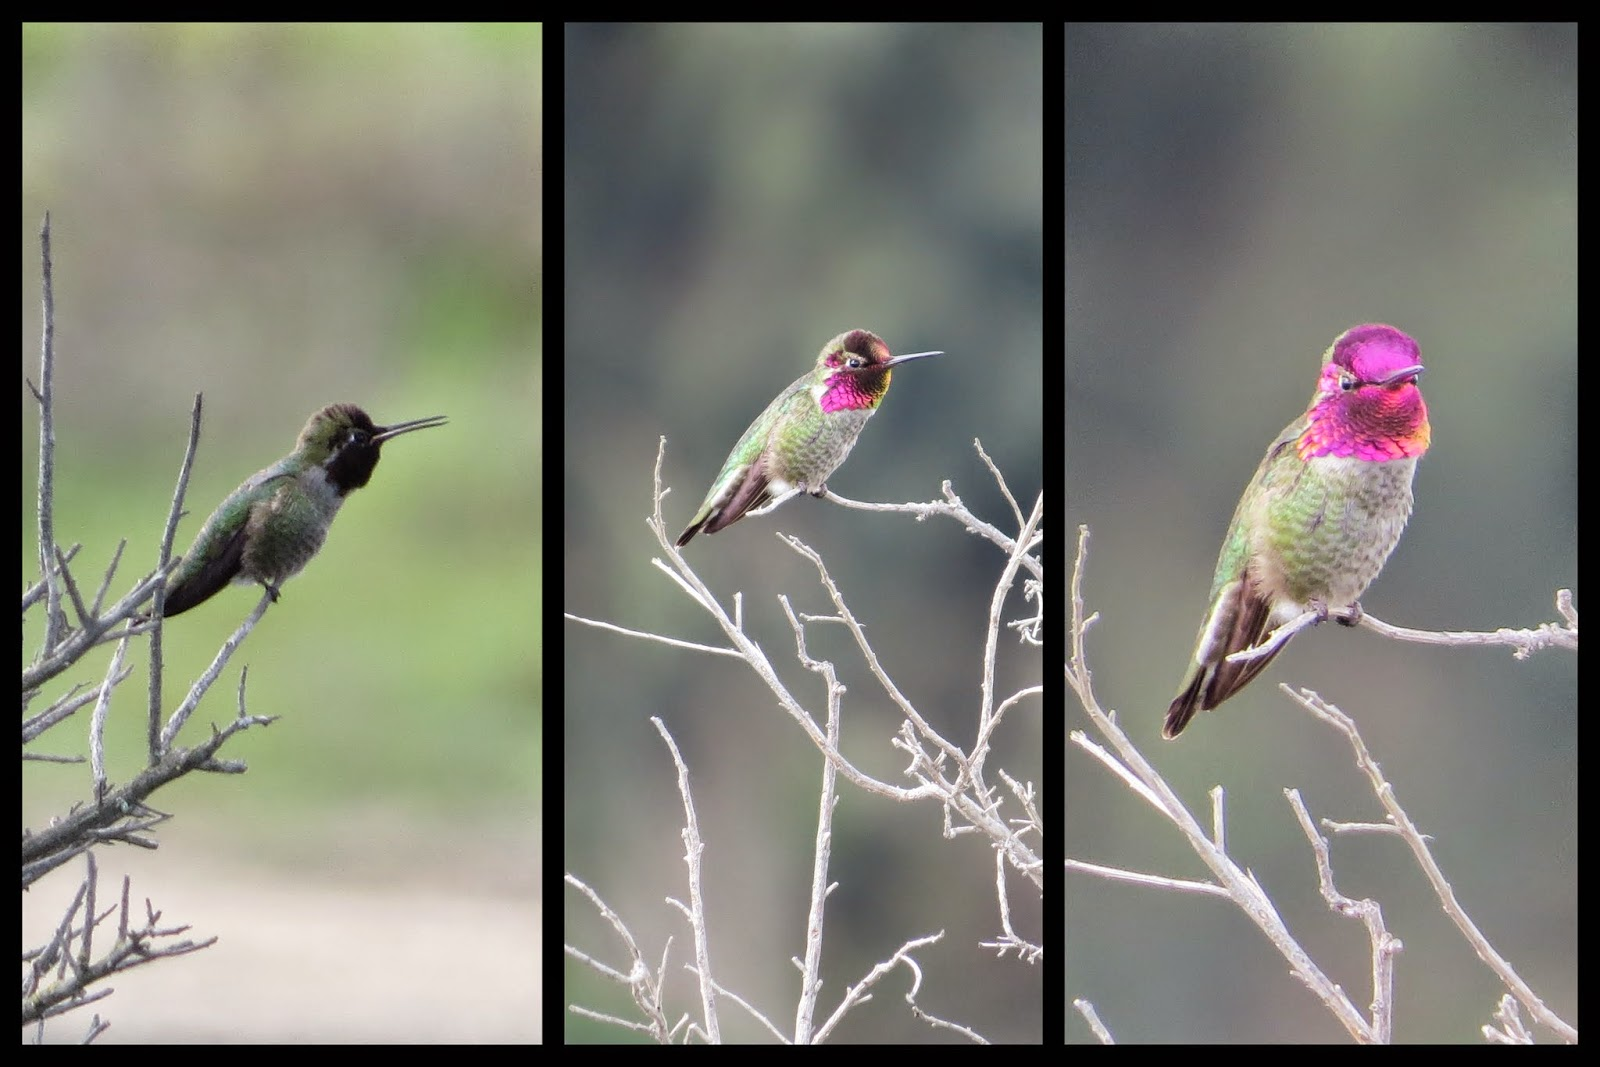 Hummingbirds at Palo Alto Baylands